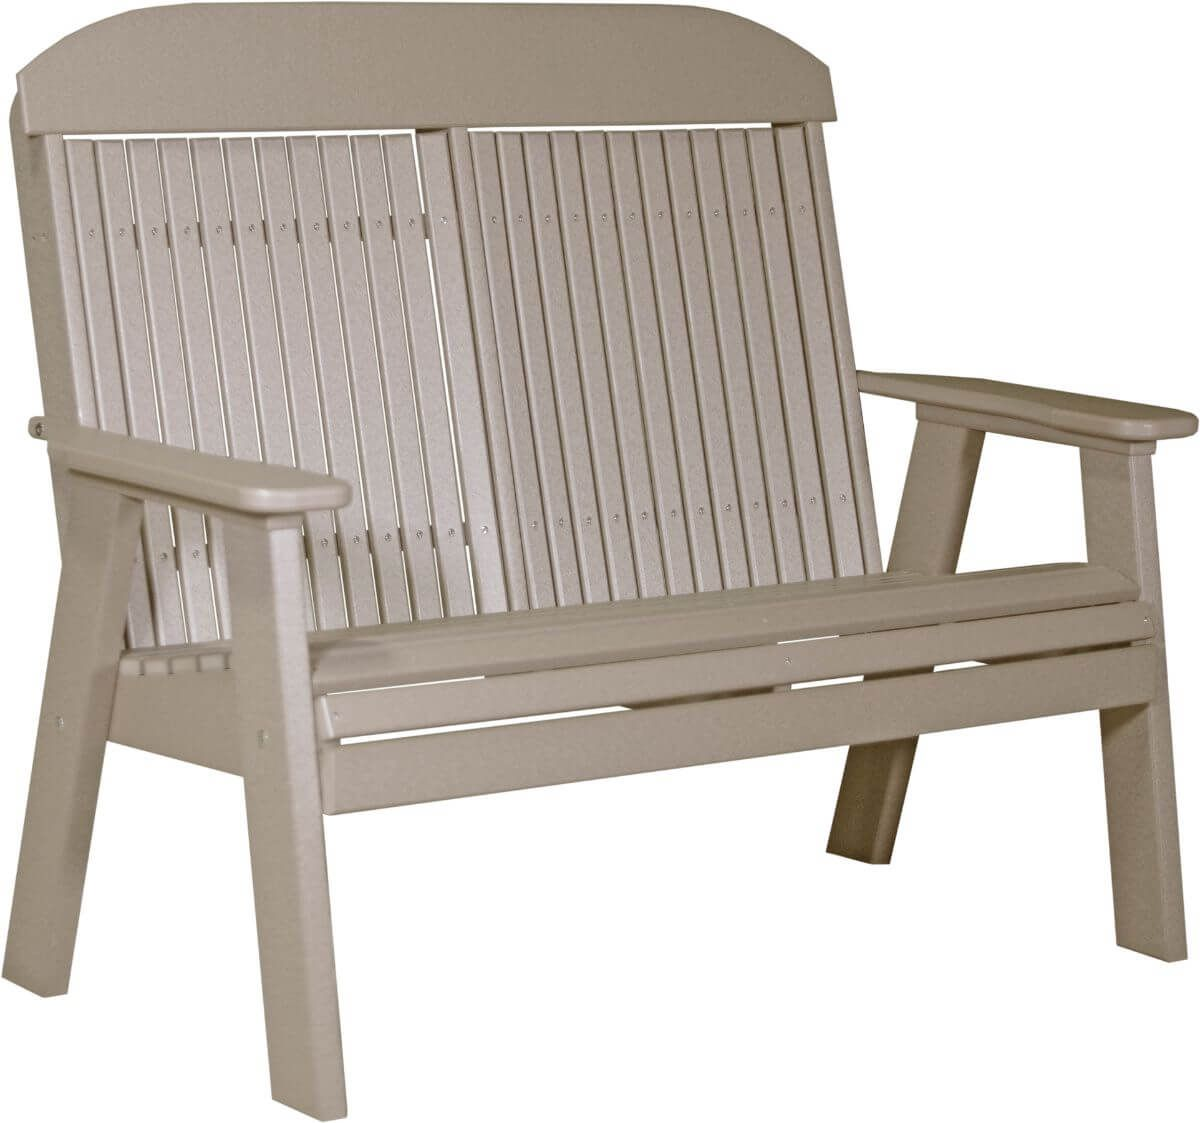 Weatherwood Stockton Patio Bench